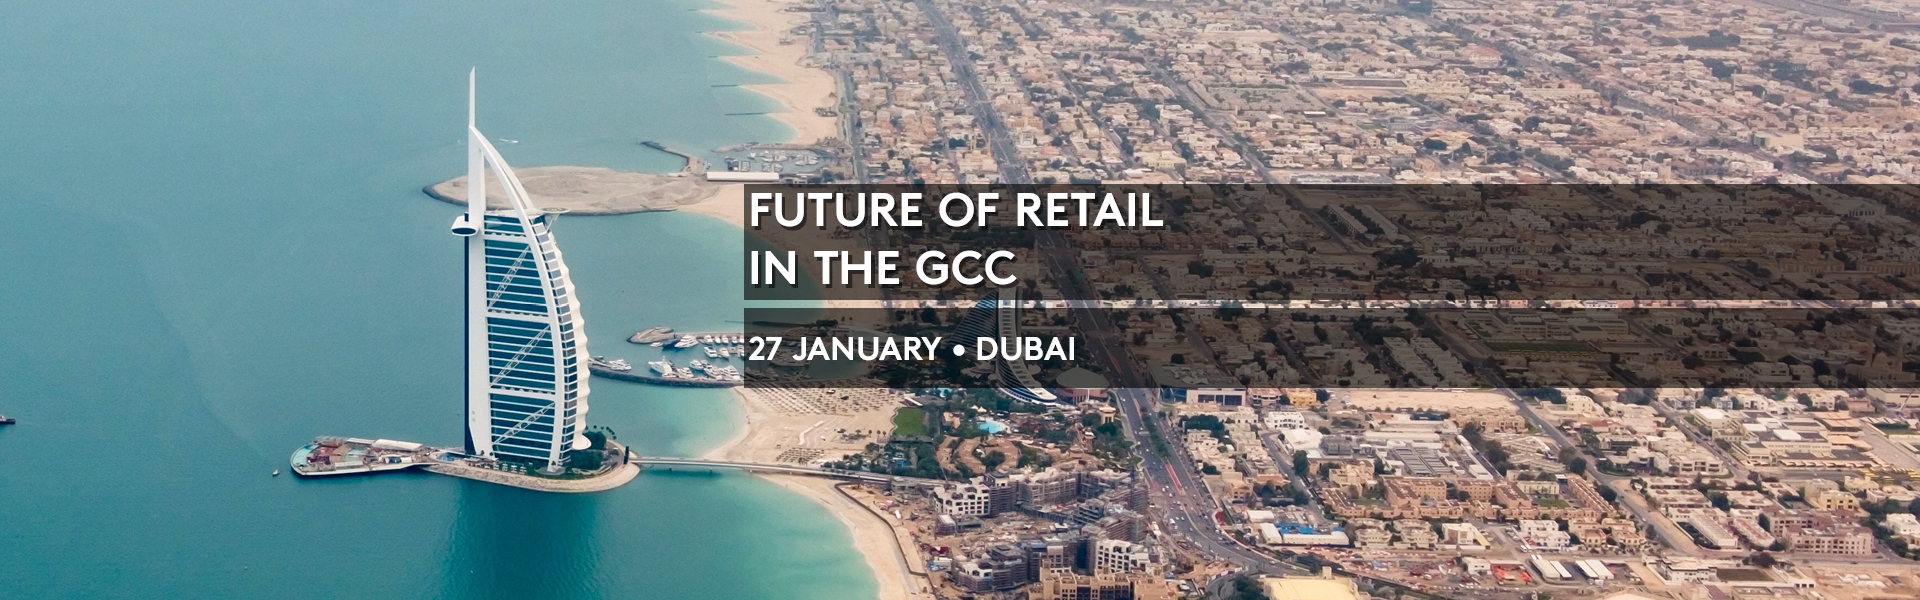 Future of Retail in the GCC, January 27, Dubai